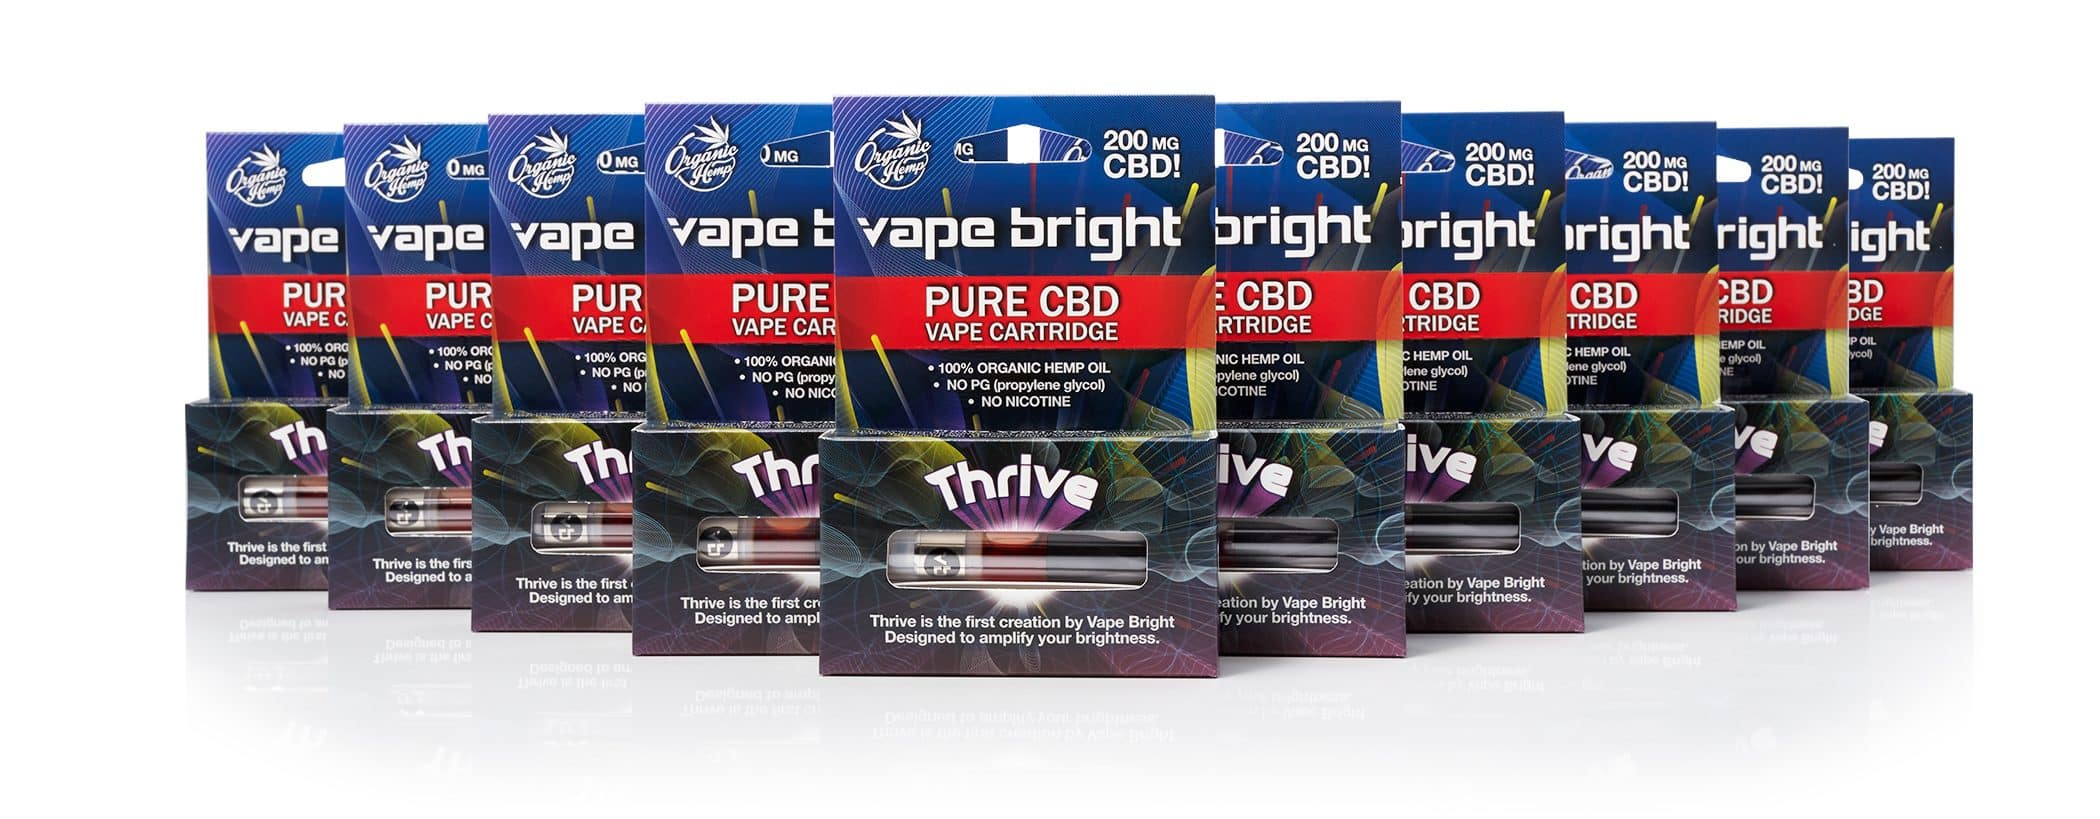 The best vape bright products for anxiety and pain relief